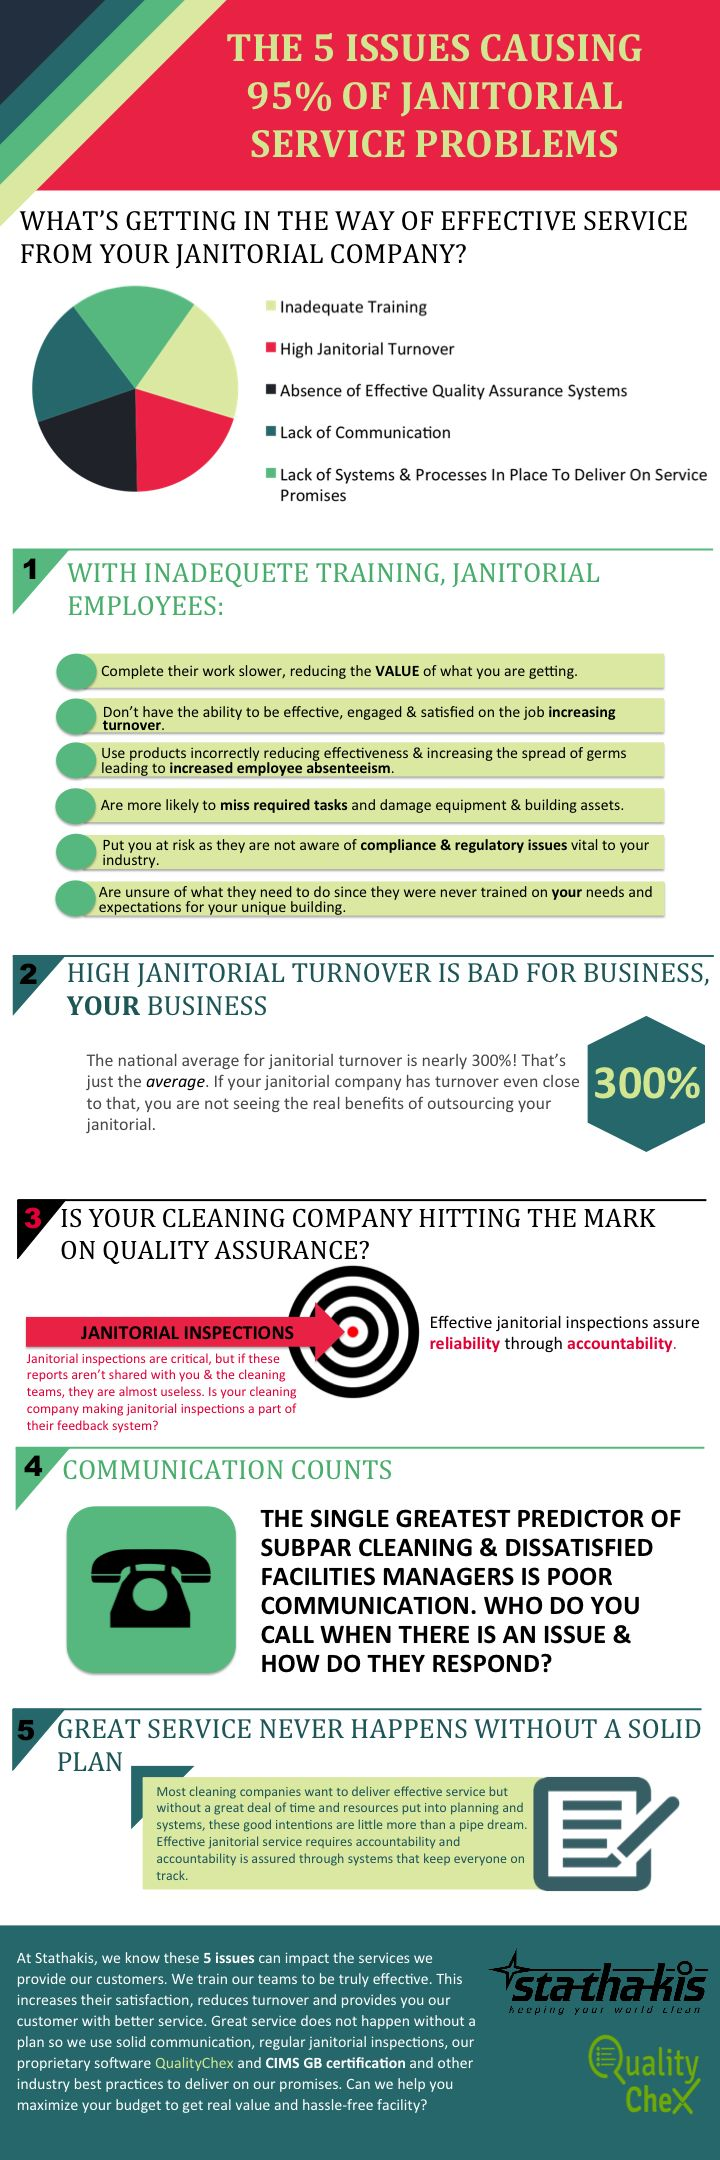 janitorial service problems, janitorial services, janitorial services infographic